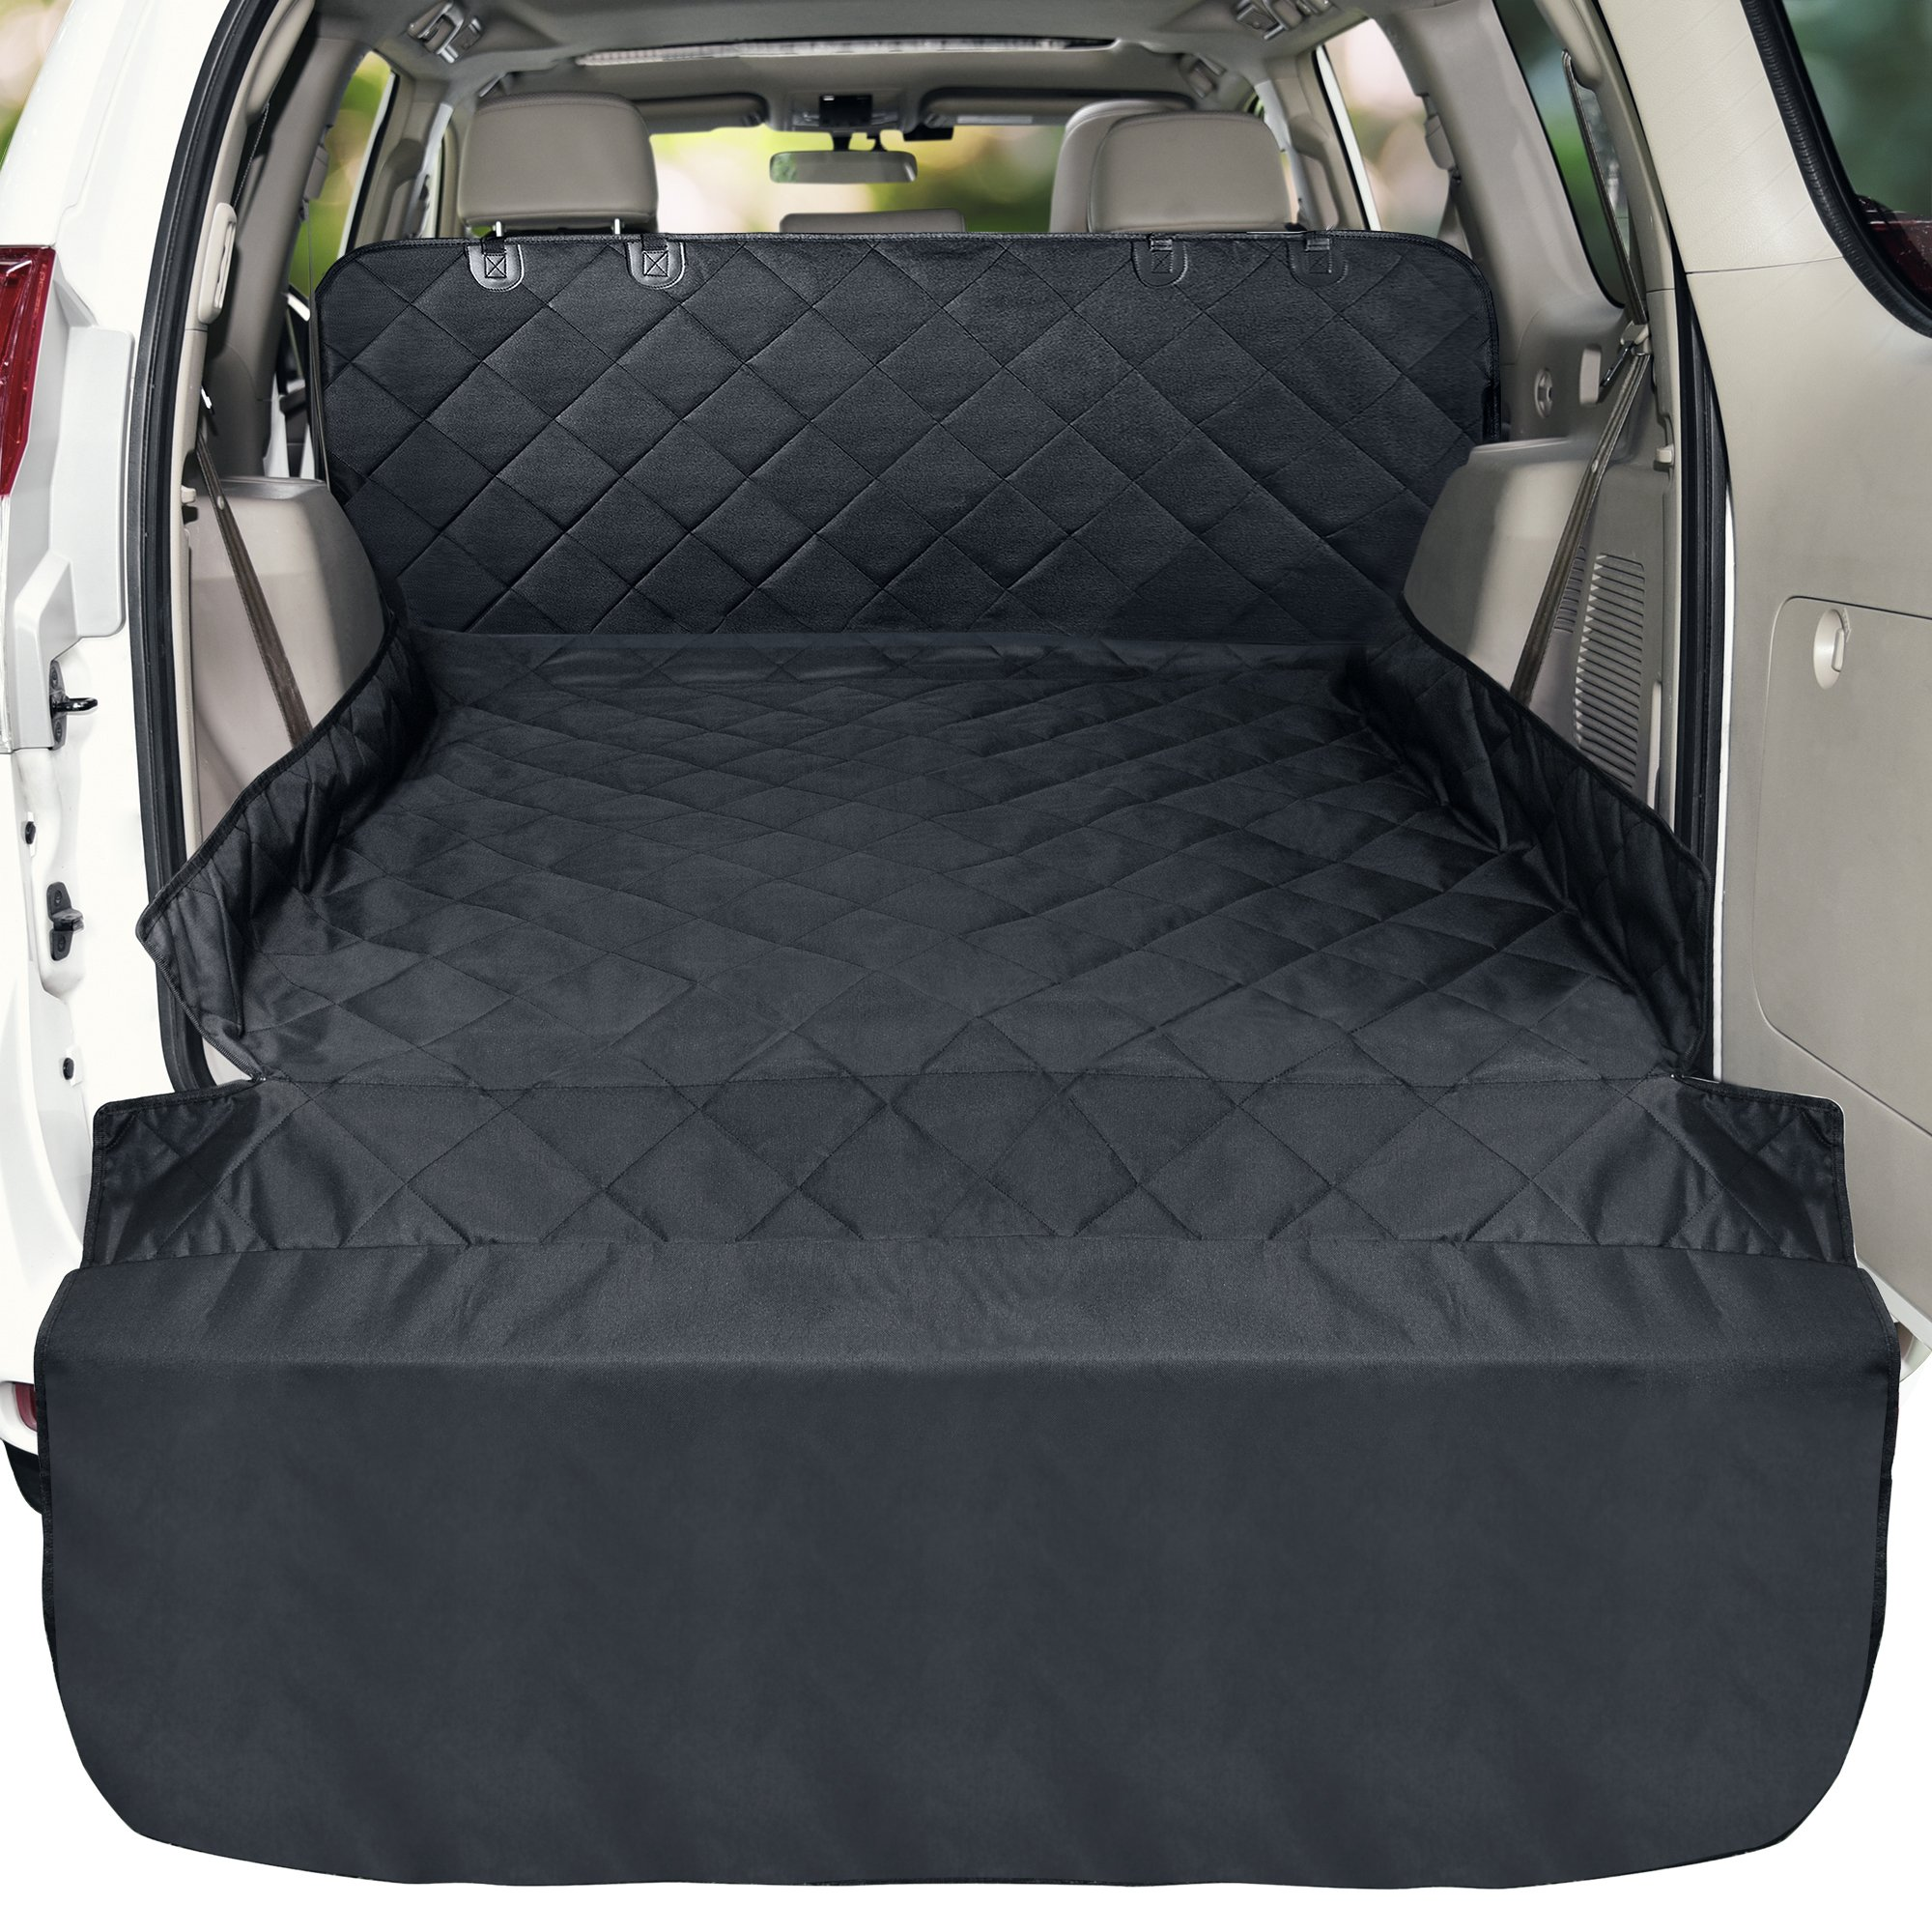 Veckle Cargo Liner, Waterproof Dog Seat Cover SUV Cargo Cover for Dog Nonslip Mat Scratchproof Cargo Protector for SUVs Sedans Vans